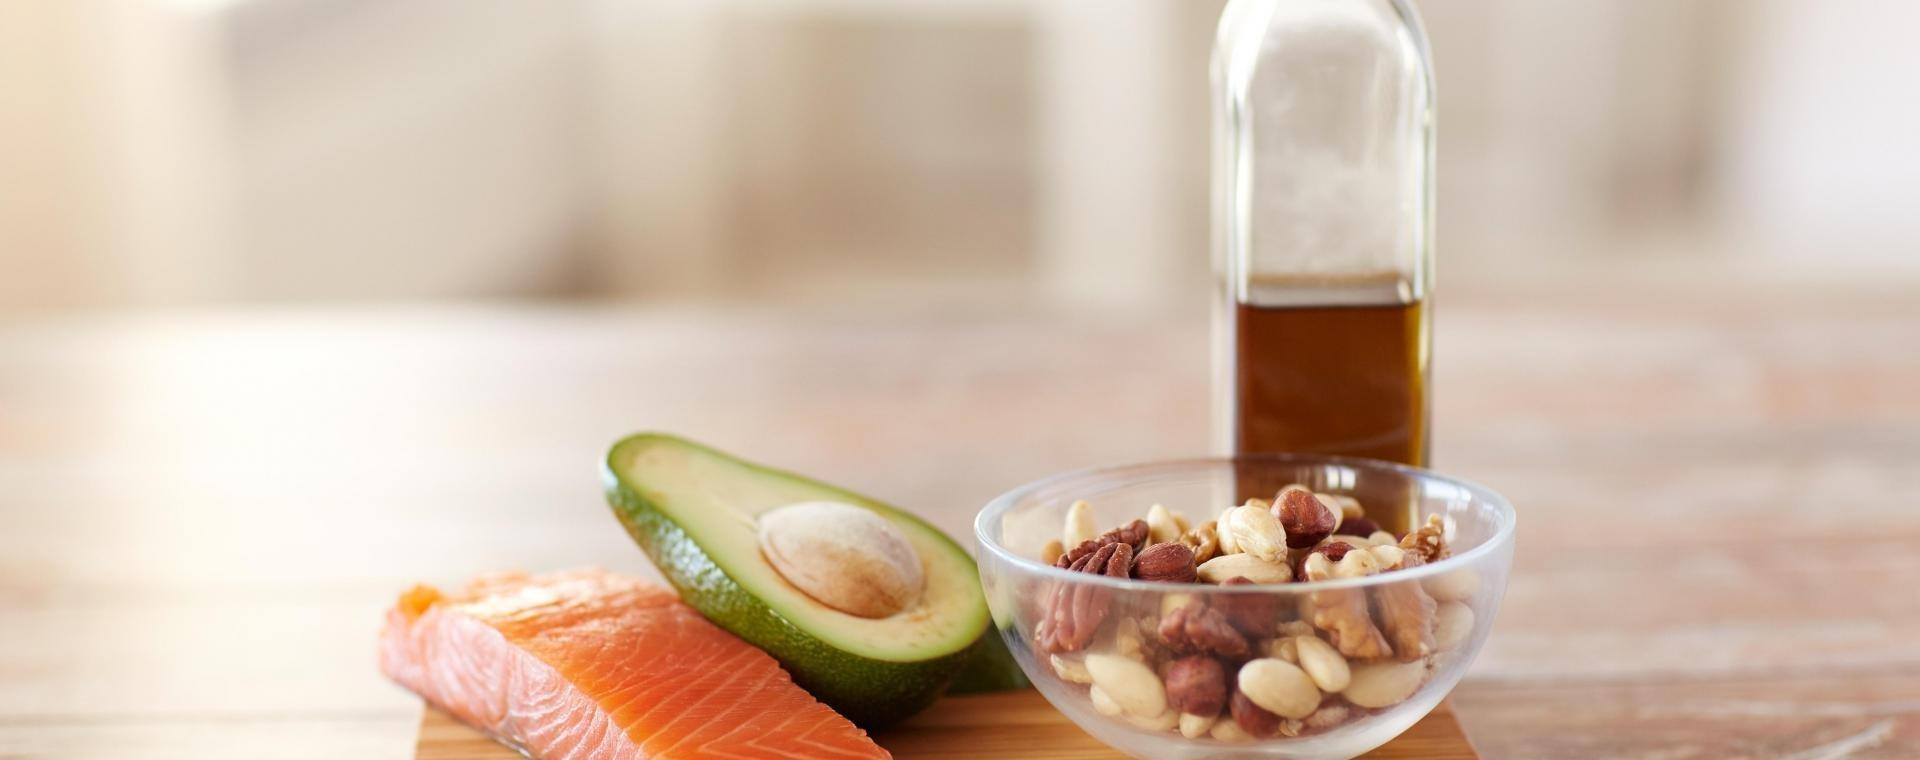 How To Increase Fat Intake On A Low Carb Diet